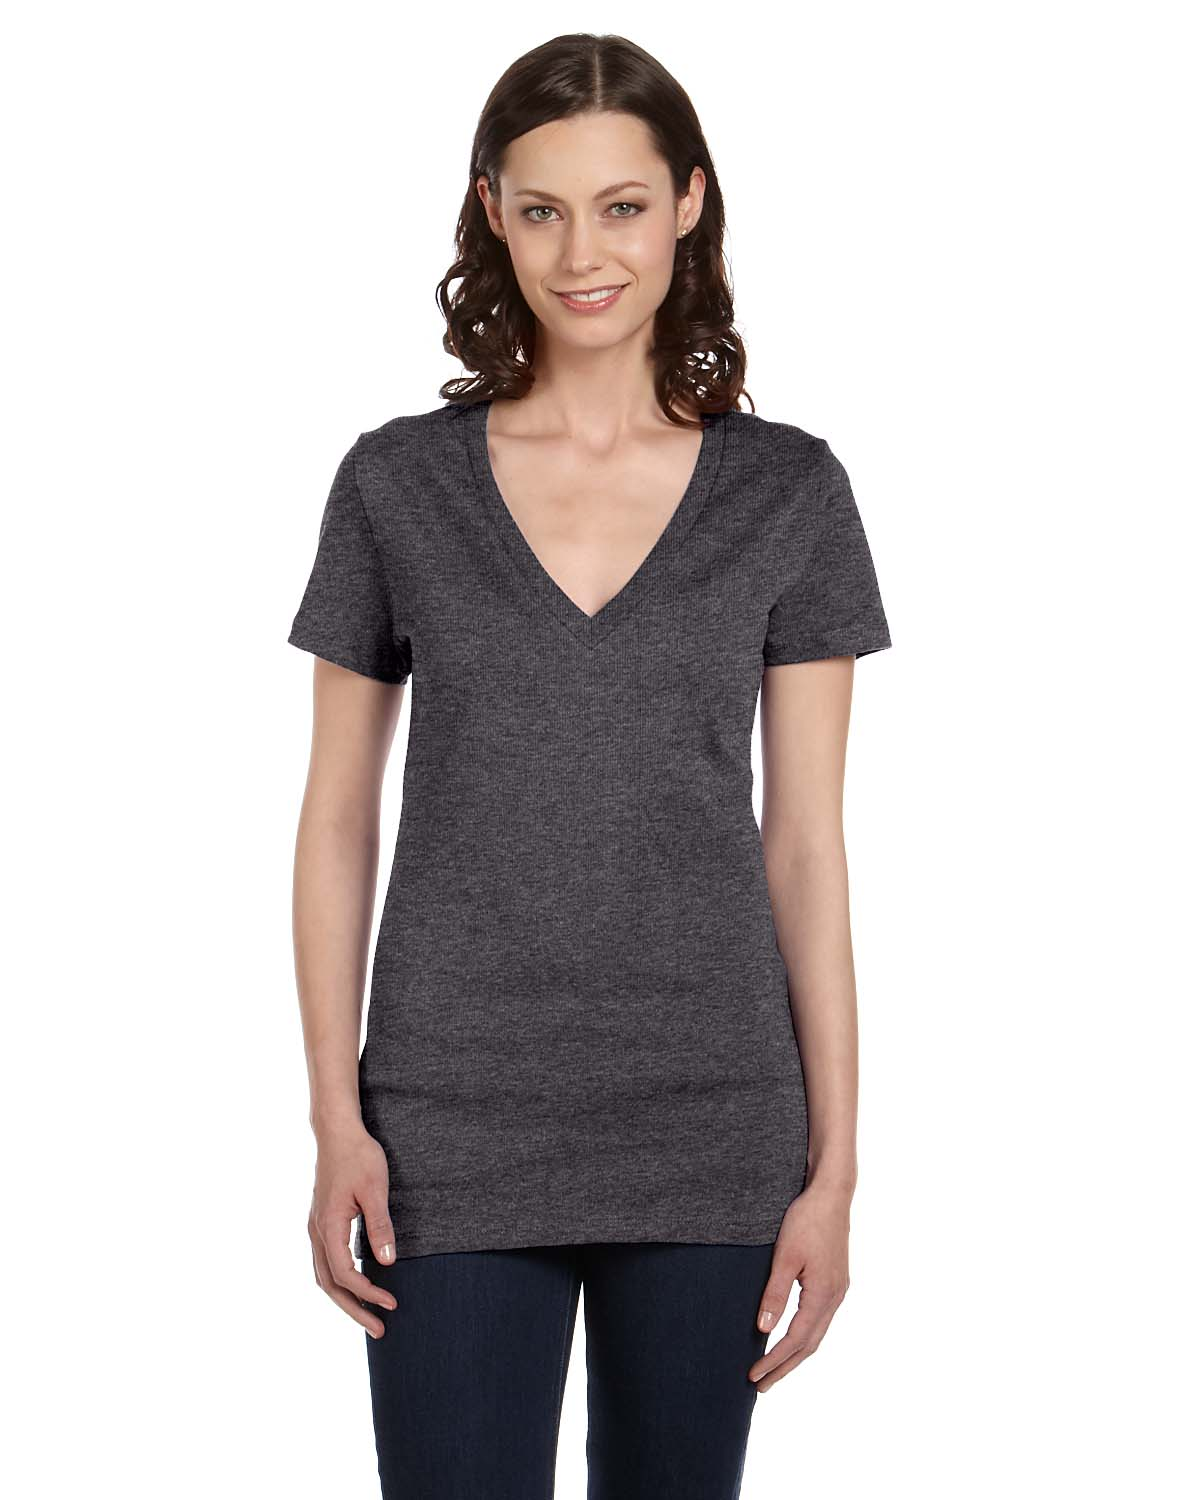 Without a doubt, v-necks are the most stylish t-shirt options. The elegant cut of a v-neck t-shirt flatters just about every form and adds a touch of femininity to the wardrobe staple.